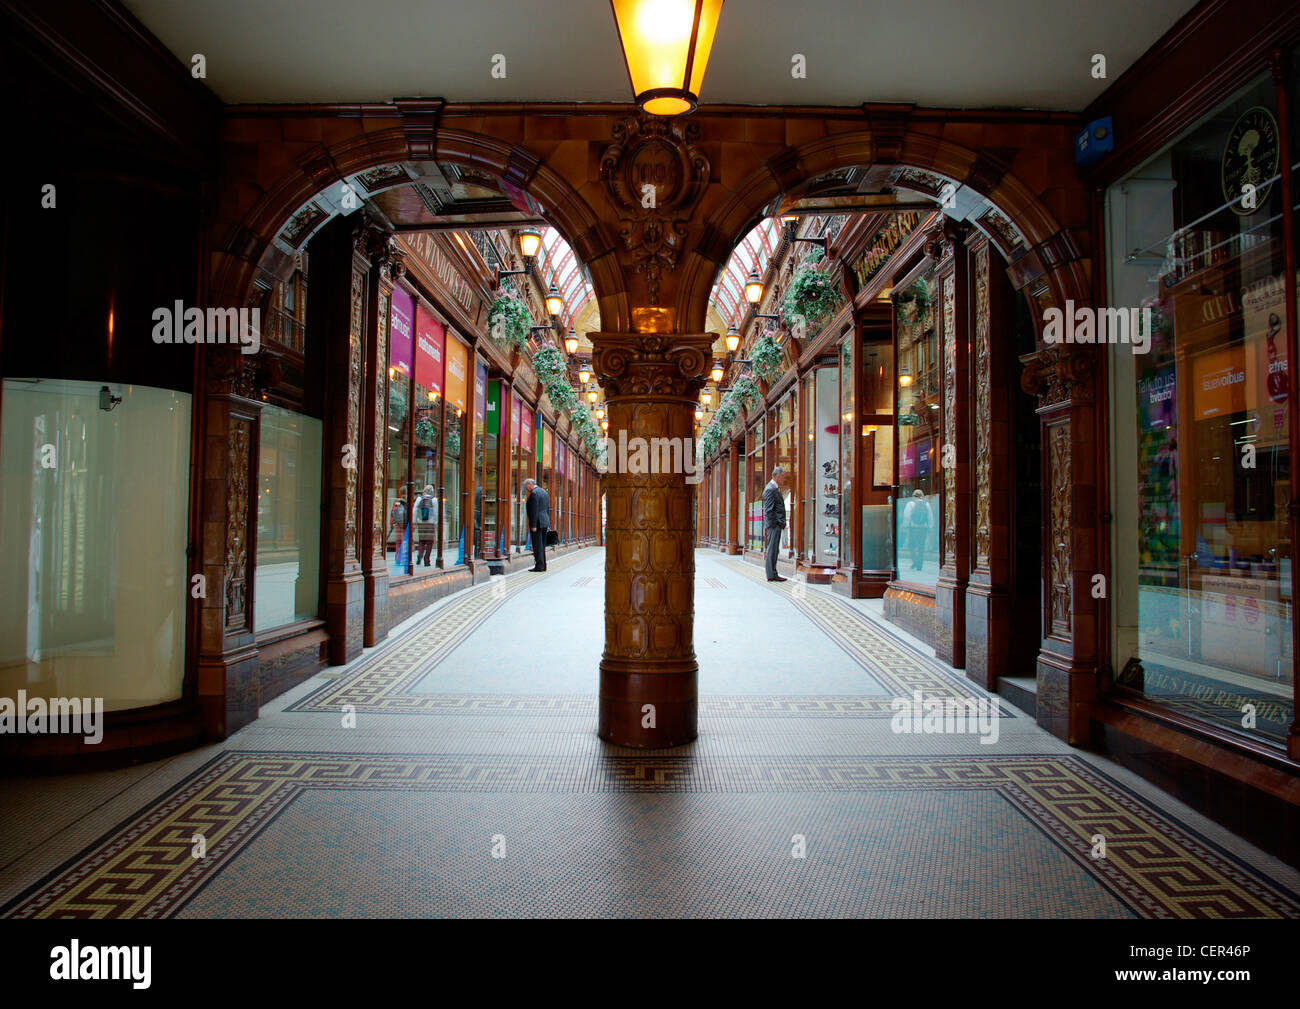 Two men window shopping in Central Arcade. Stock Photo